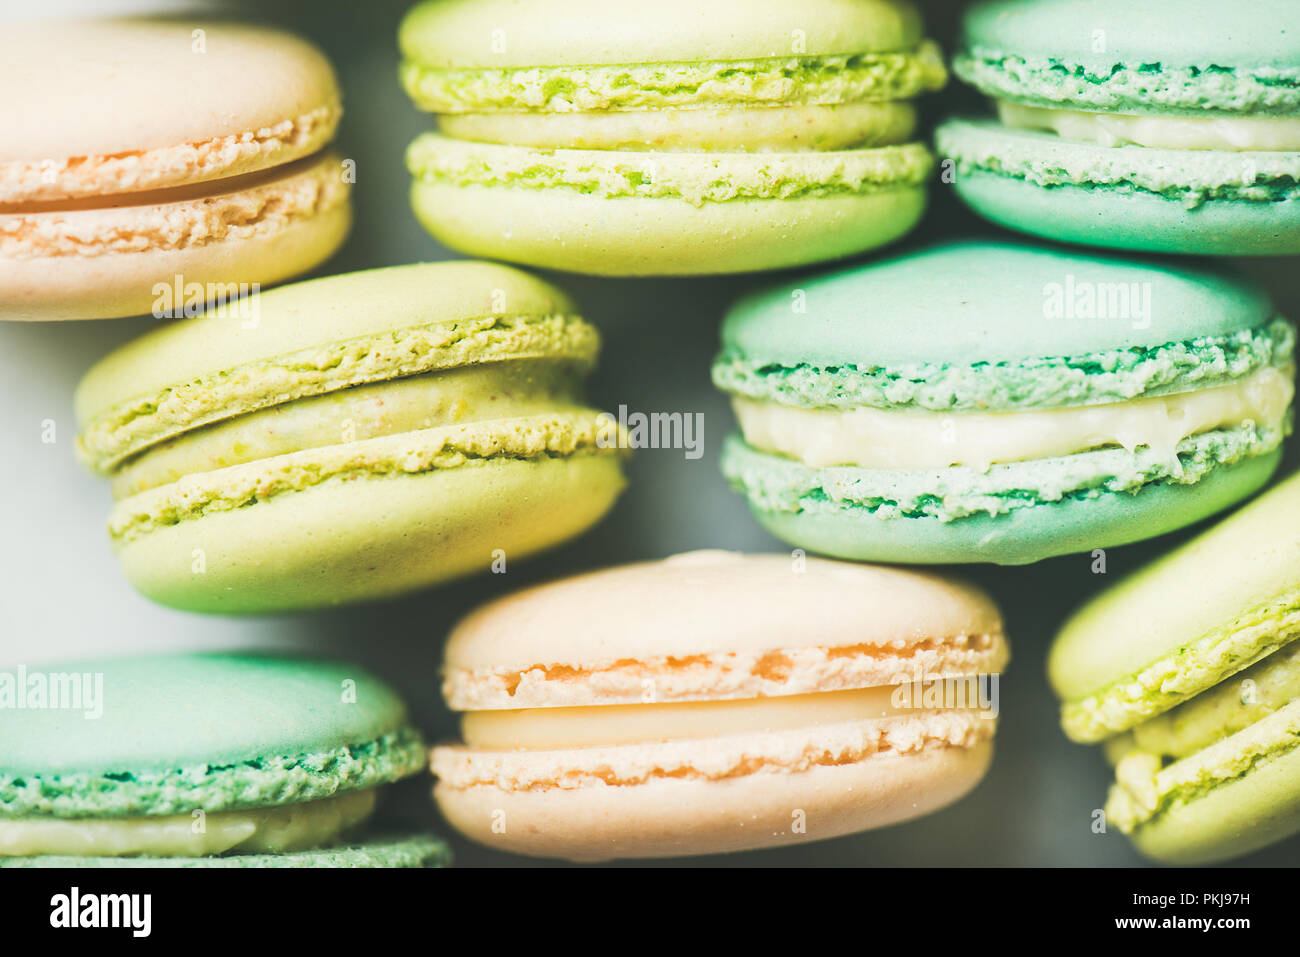 Pastel colored French macaroons cookies over light background - Stock Image